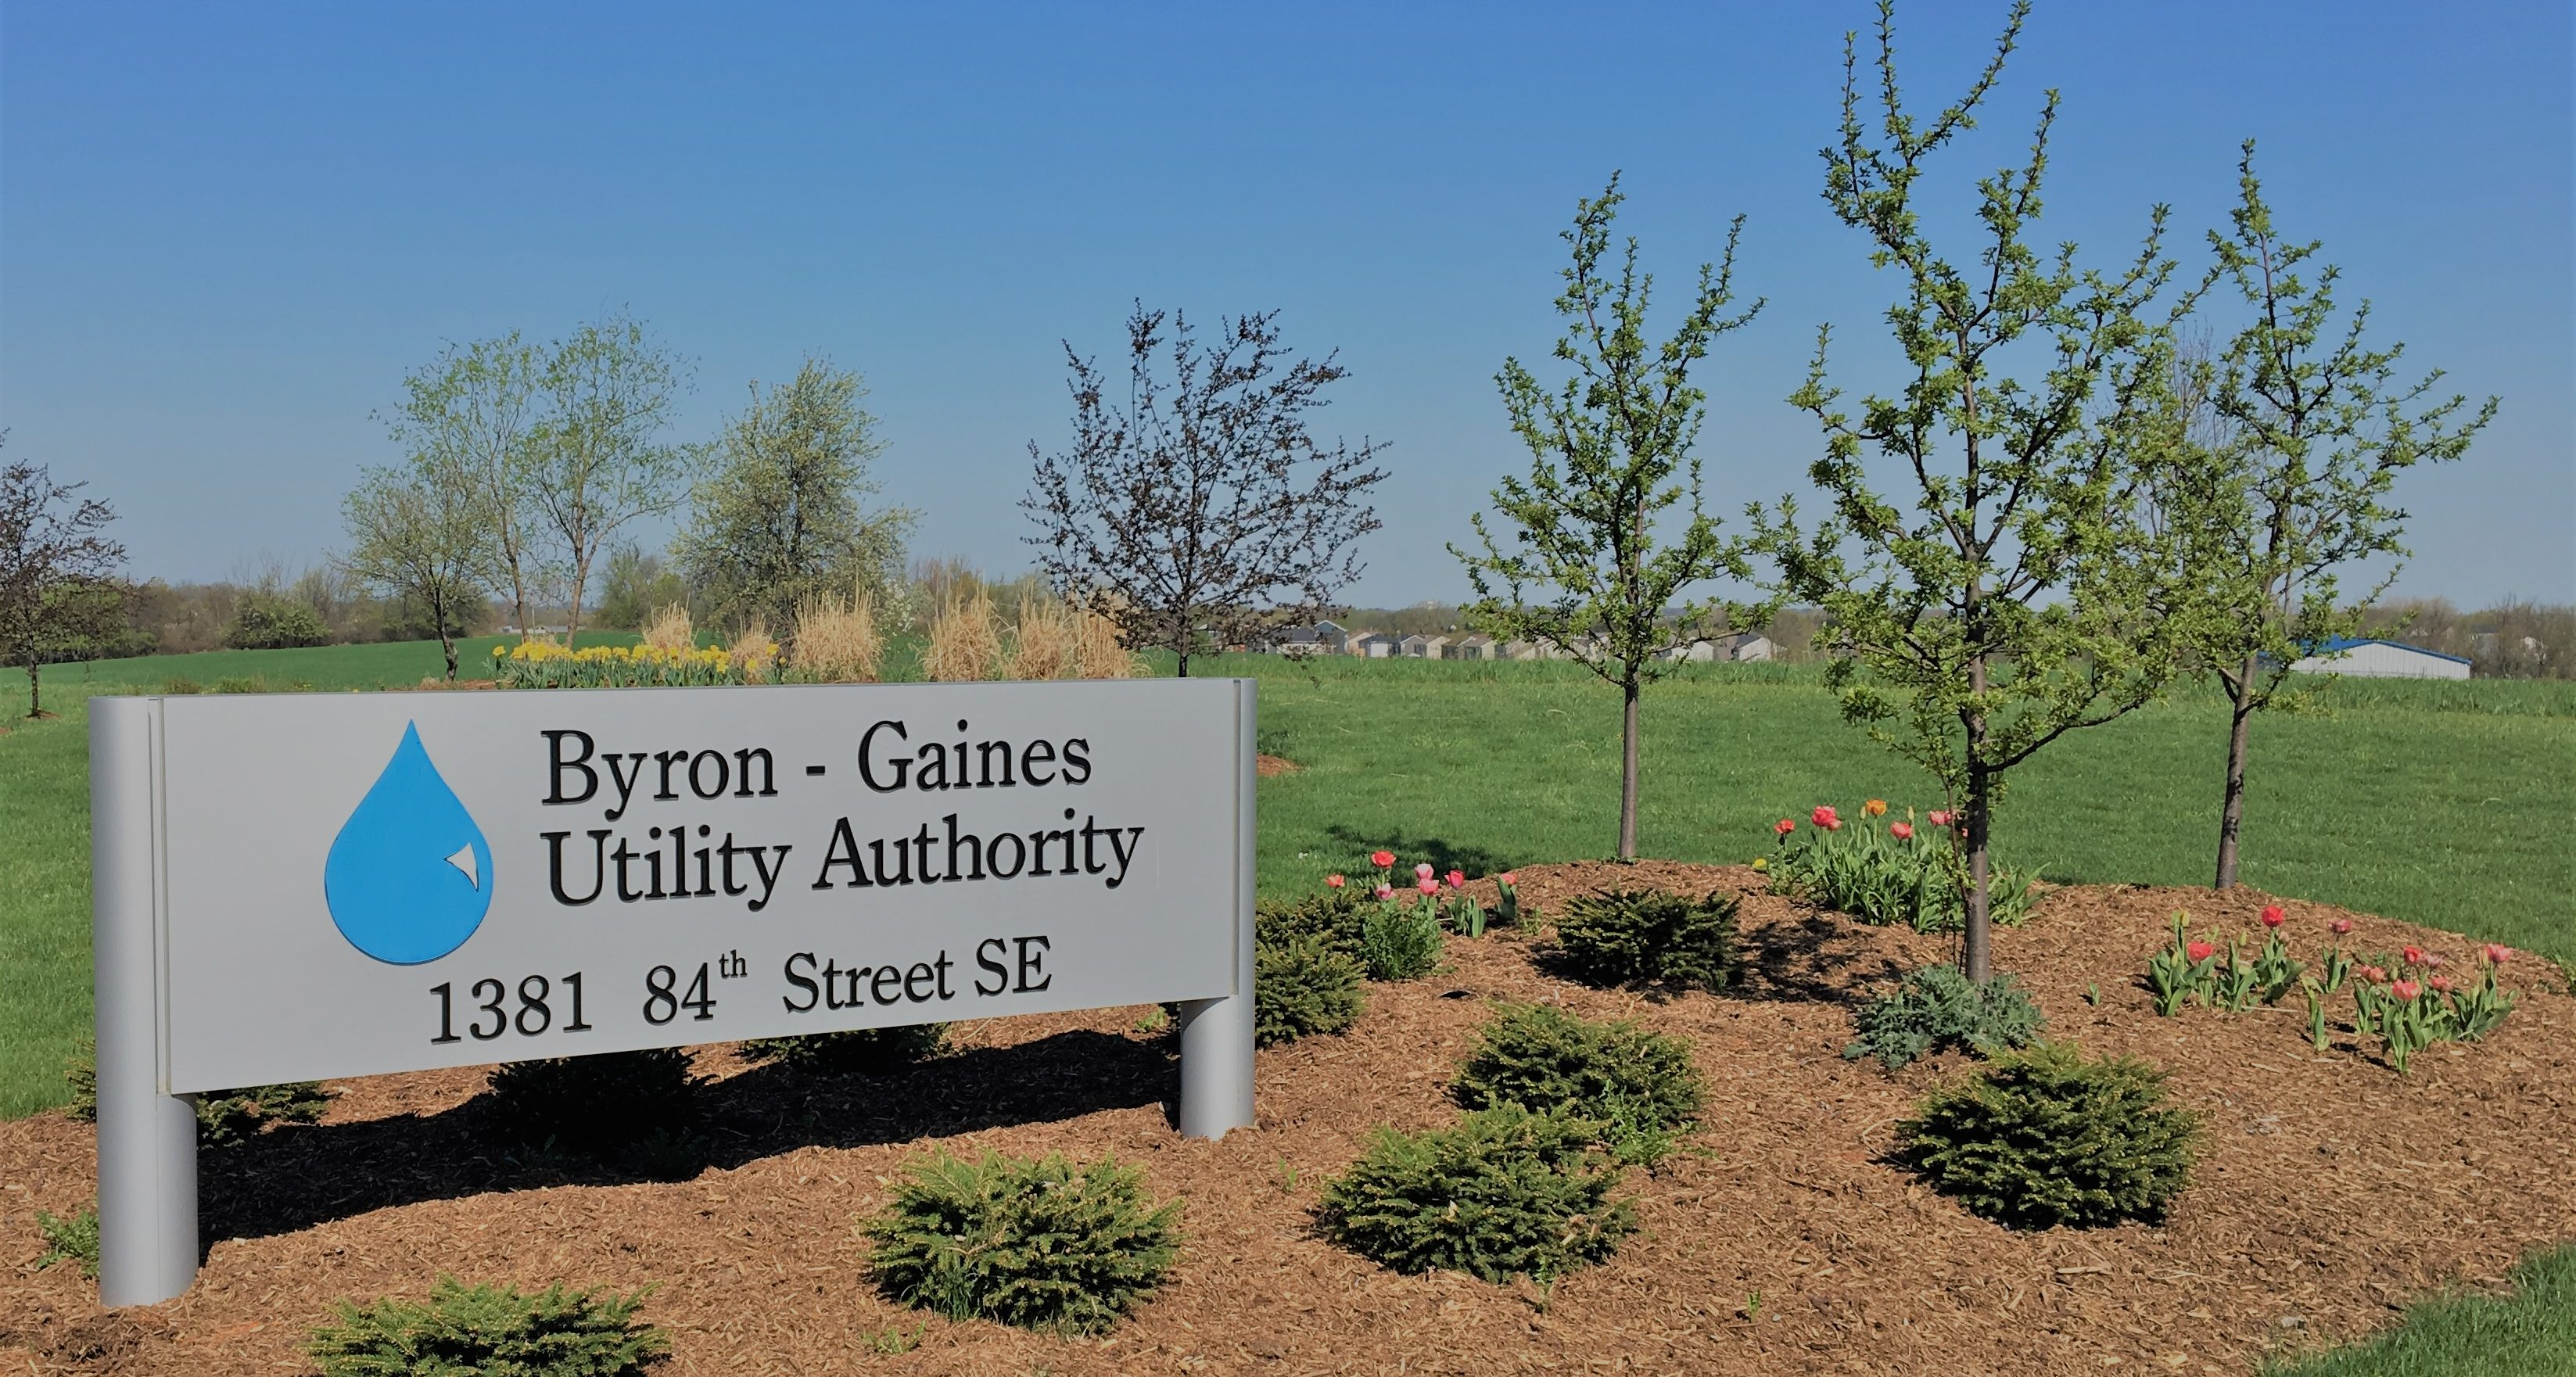 Byron-Gaines Utility Authority